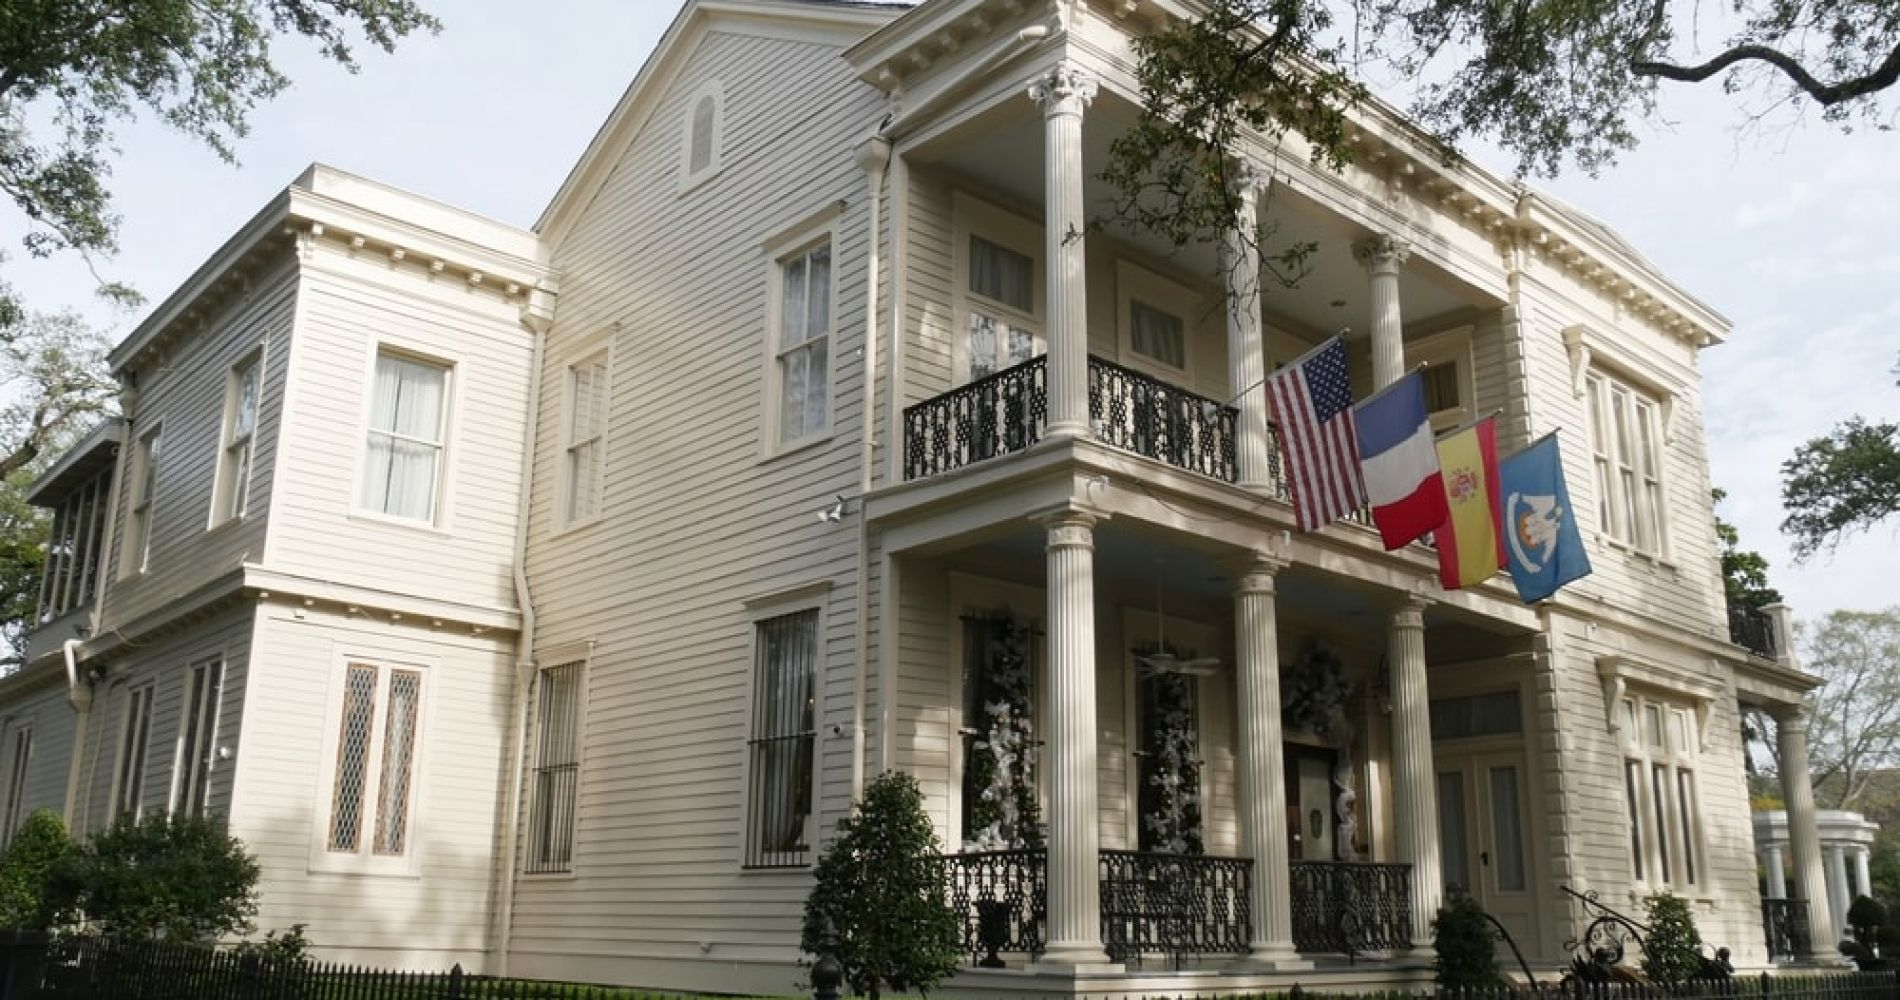 Do a Self Guided Tour of the Mansions in New Orleans Garden District